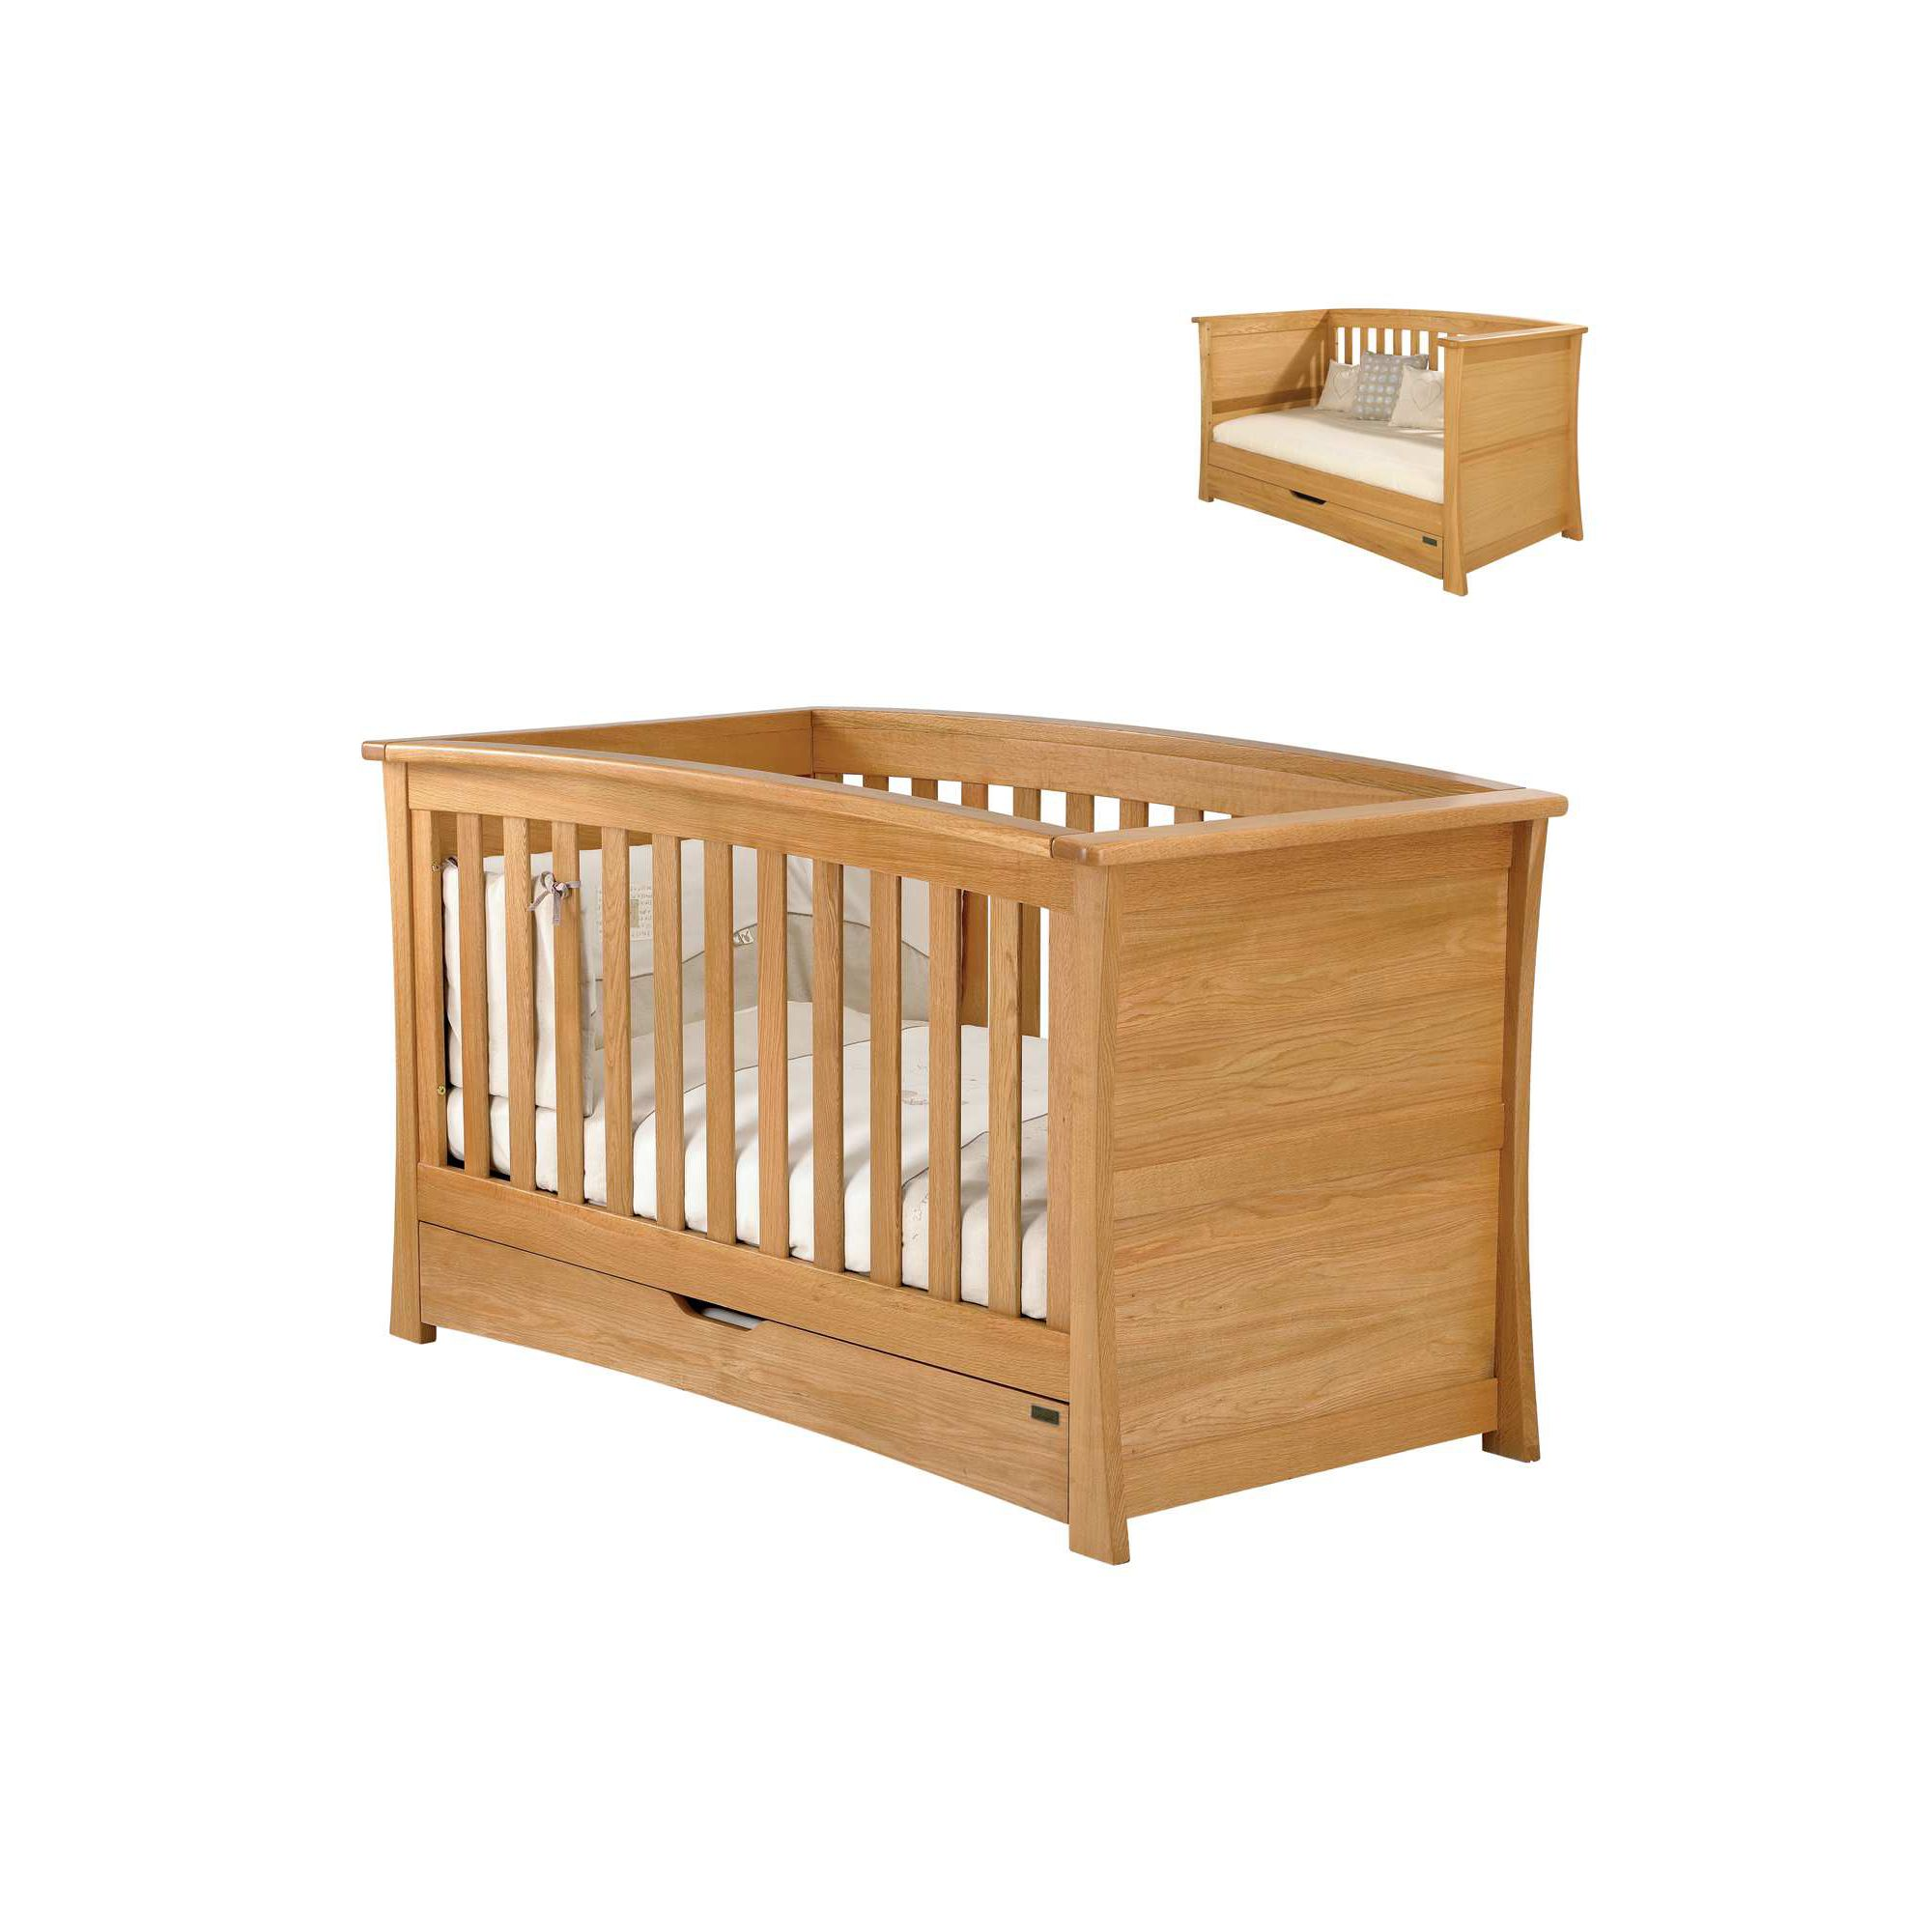 Mamas & Papas - Ocean Cot/Day Bed - Golden Oak at Tesco Direct